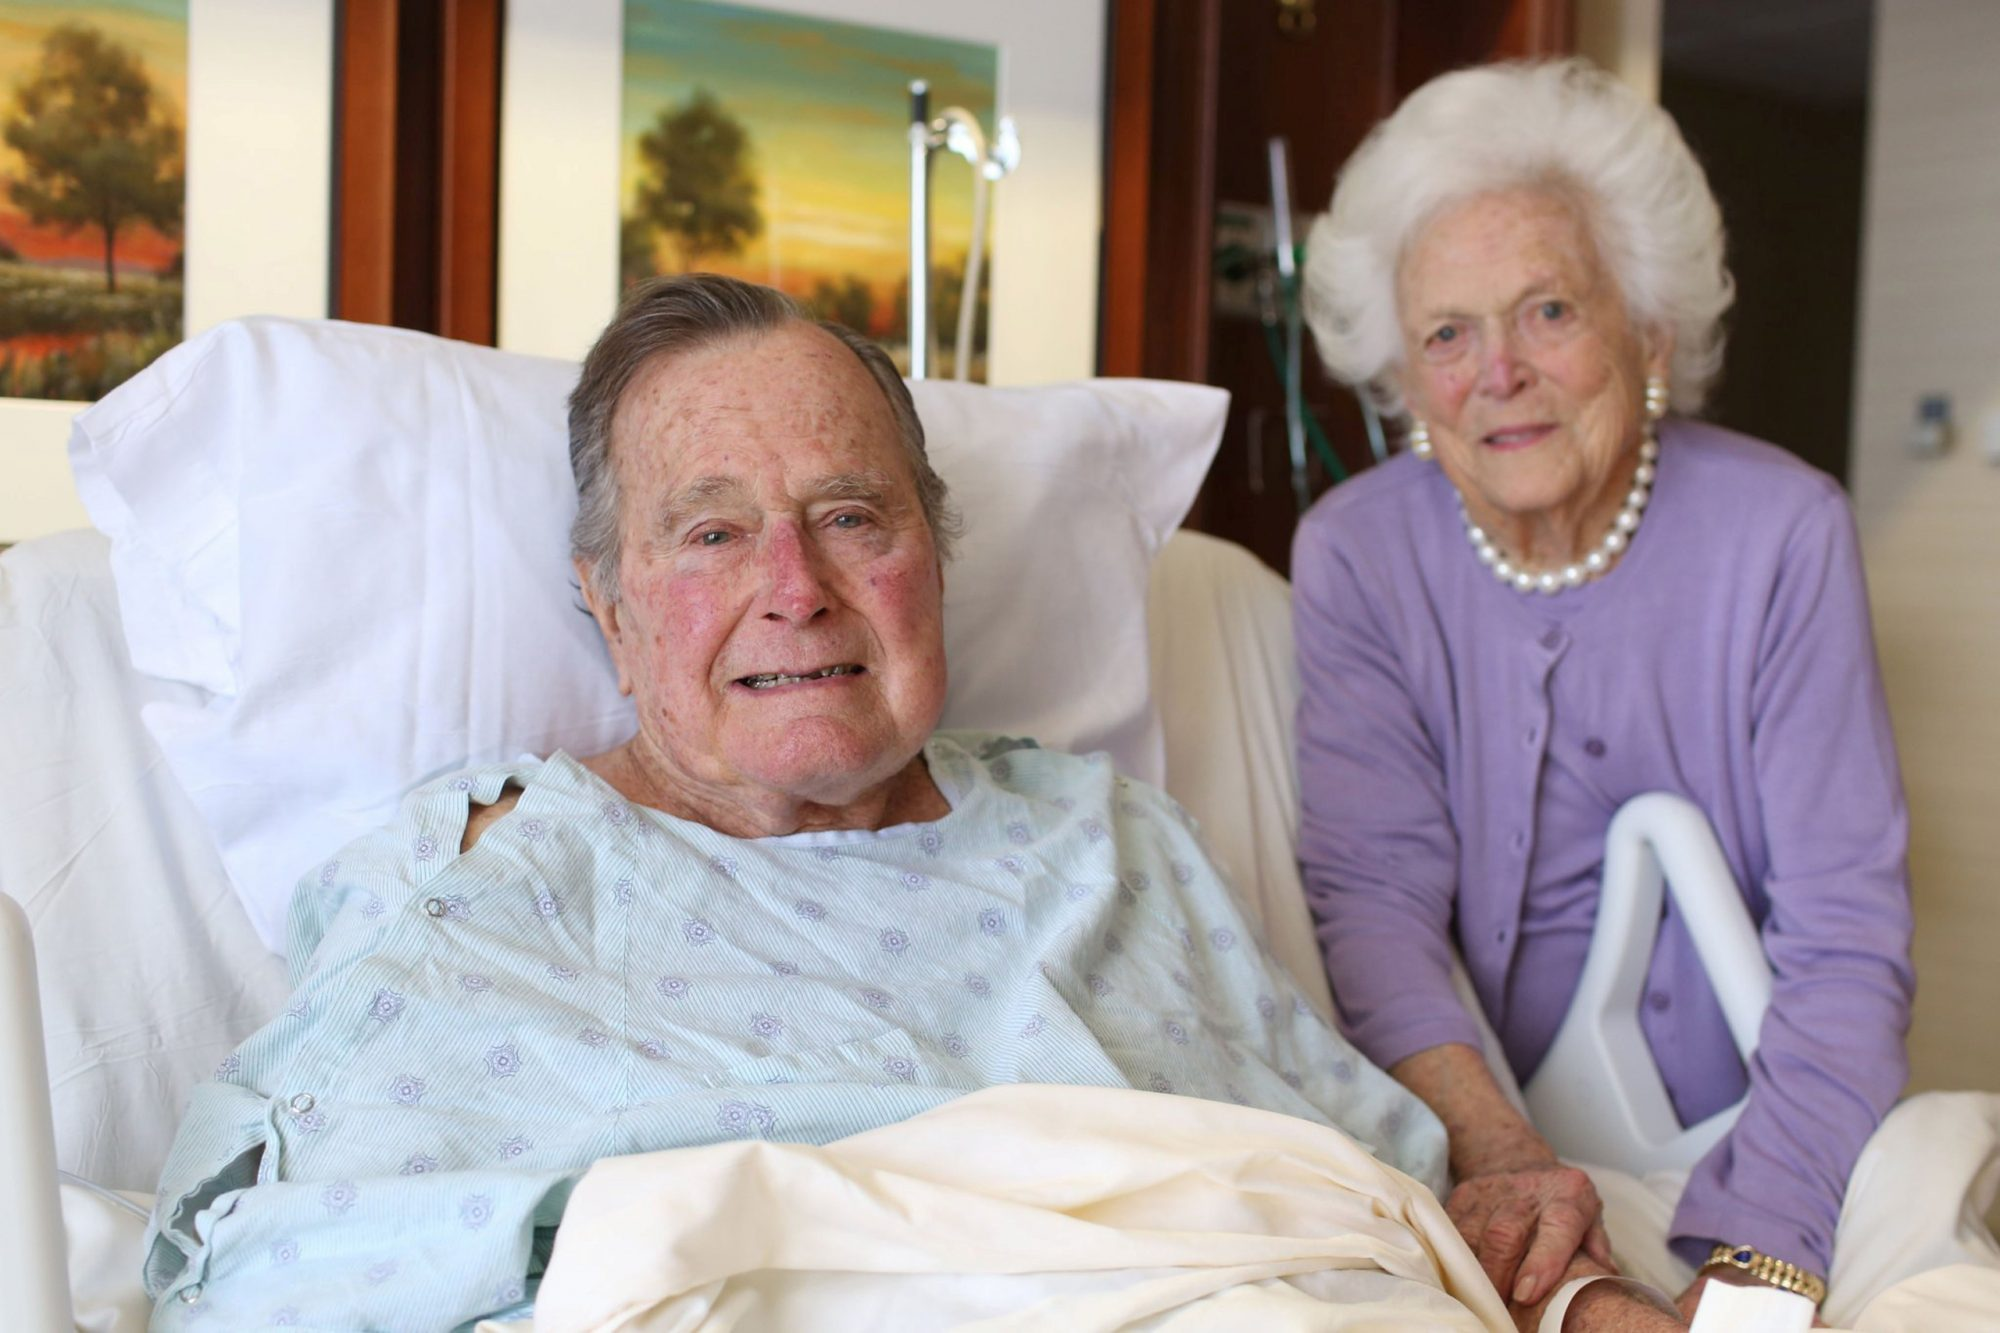 Former President George H.W. Bush and his wife Barbara Bush are pictured in Houston Methodist Hospital in Houston, Texas, U.S. in this January 23, 2017 handout photo. Jim McGrath via Twitter/Handout via REUTERS ATTENTION EDITORS - THIS IMAGE WAS...